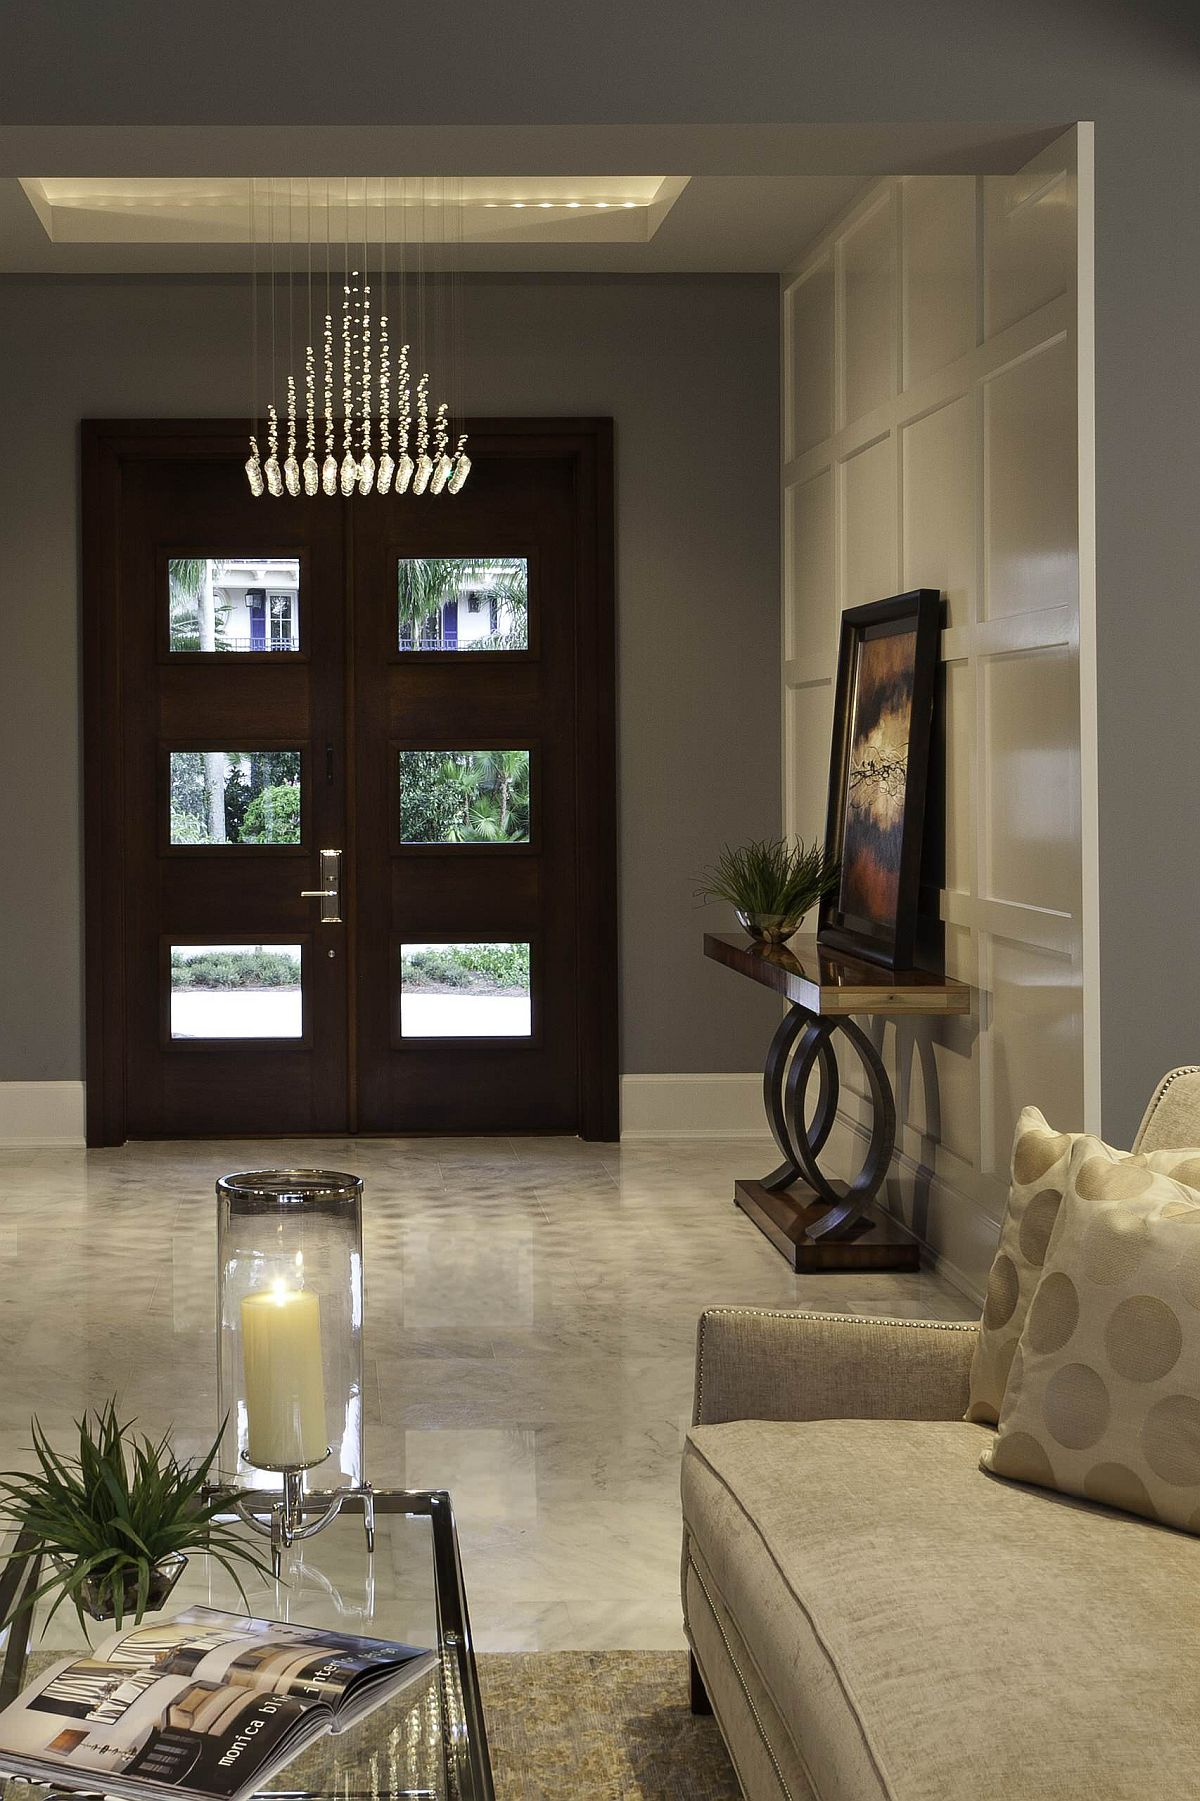 Monochromatic room in beige is both stylish and modern